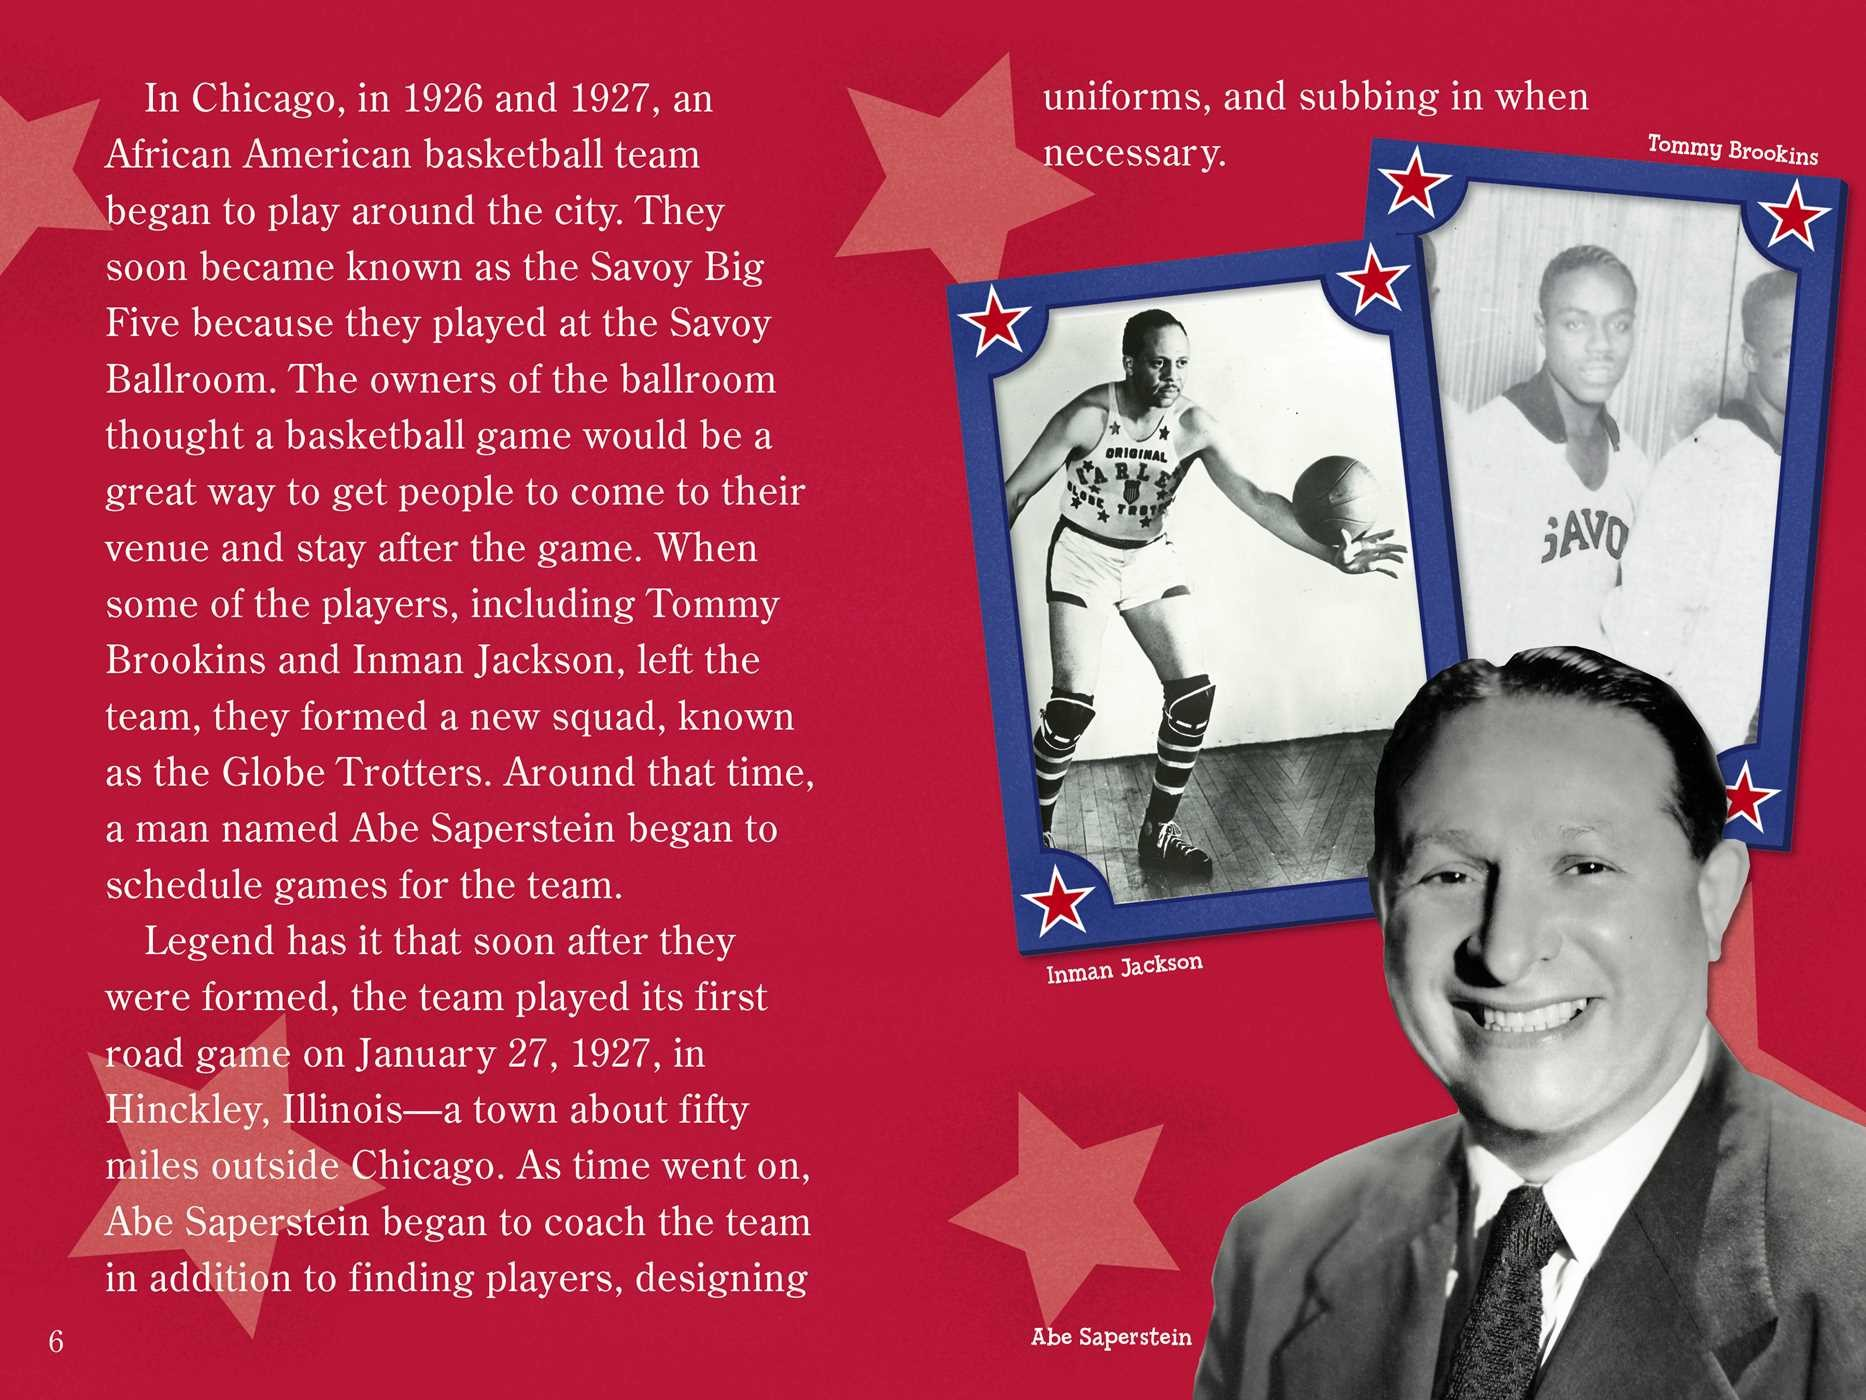 The superstar story of the harlem globetrotters 9781481487481.in01